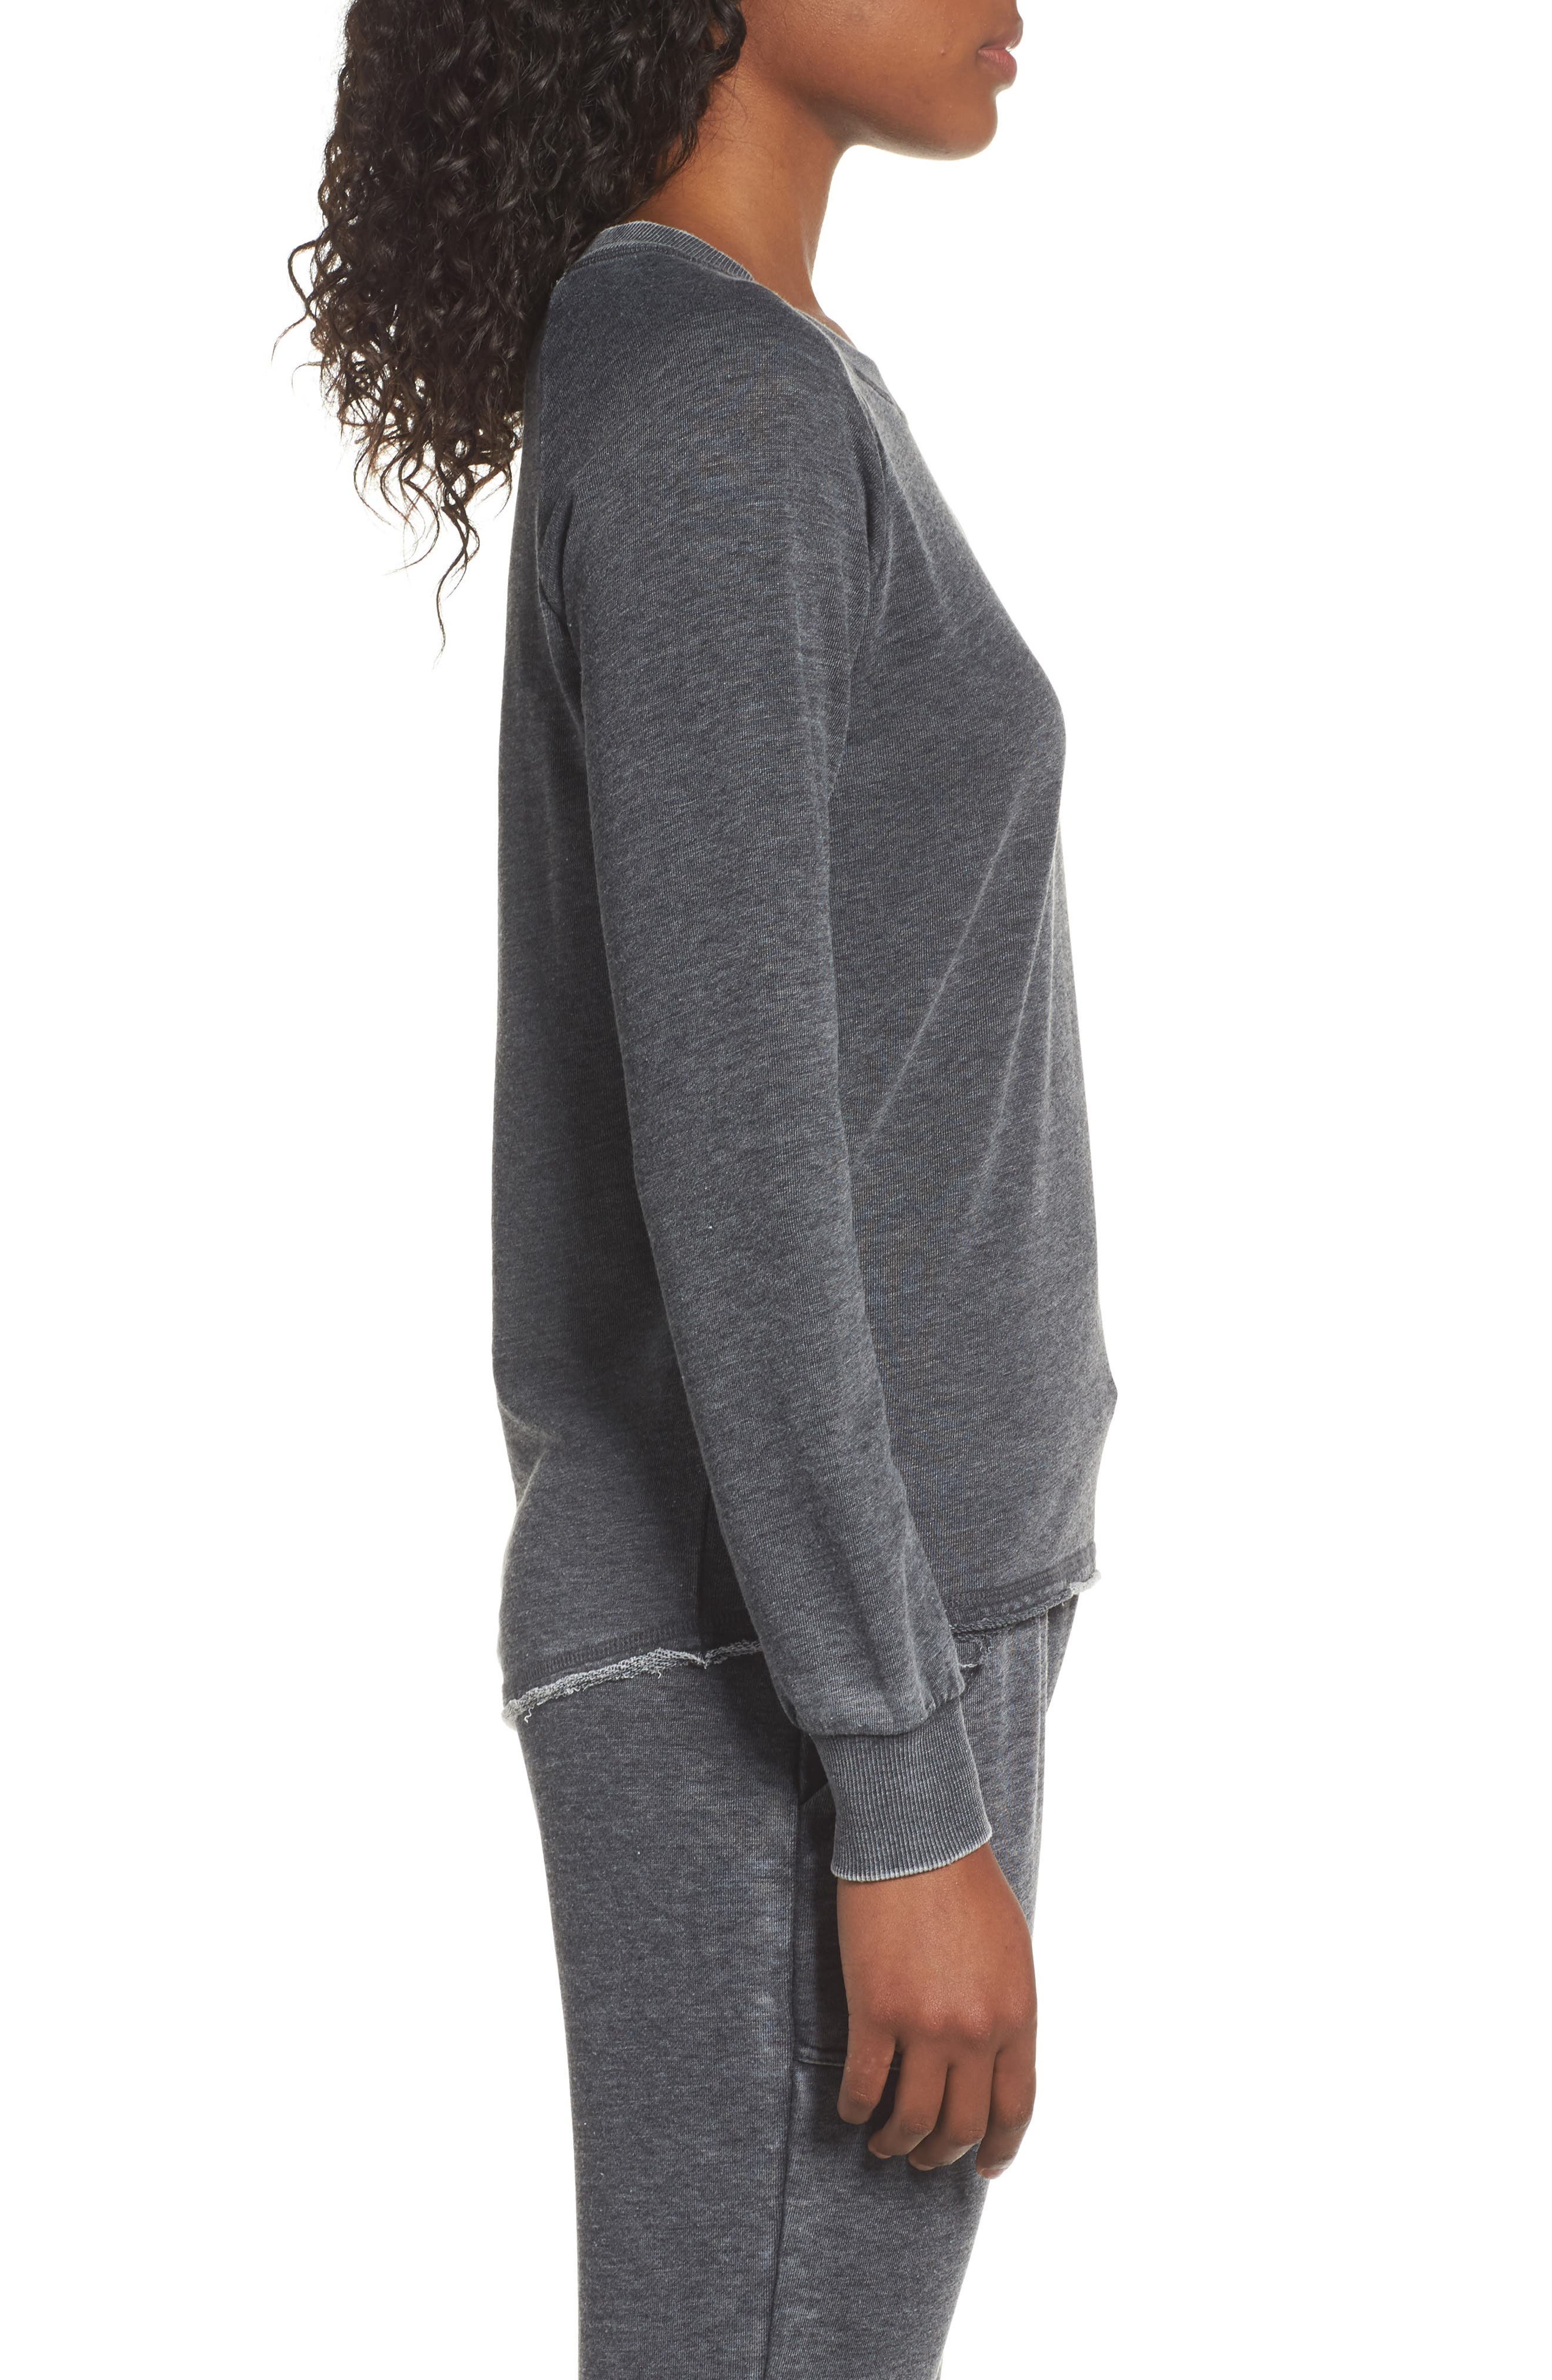 Lazy Day Pullover,                             Alternate thumbnail 3, color,                             Washed Black